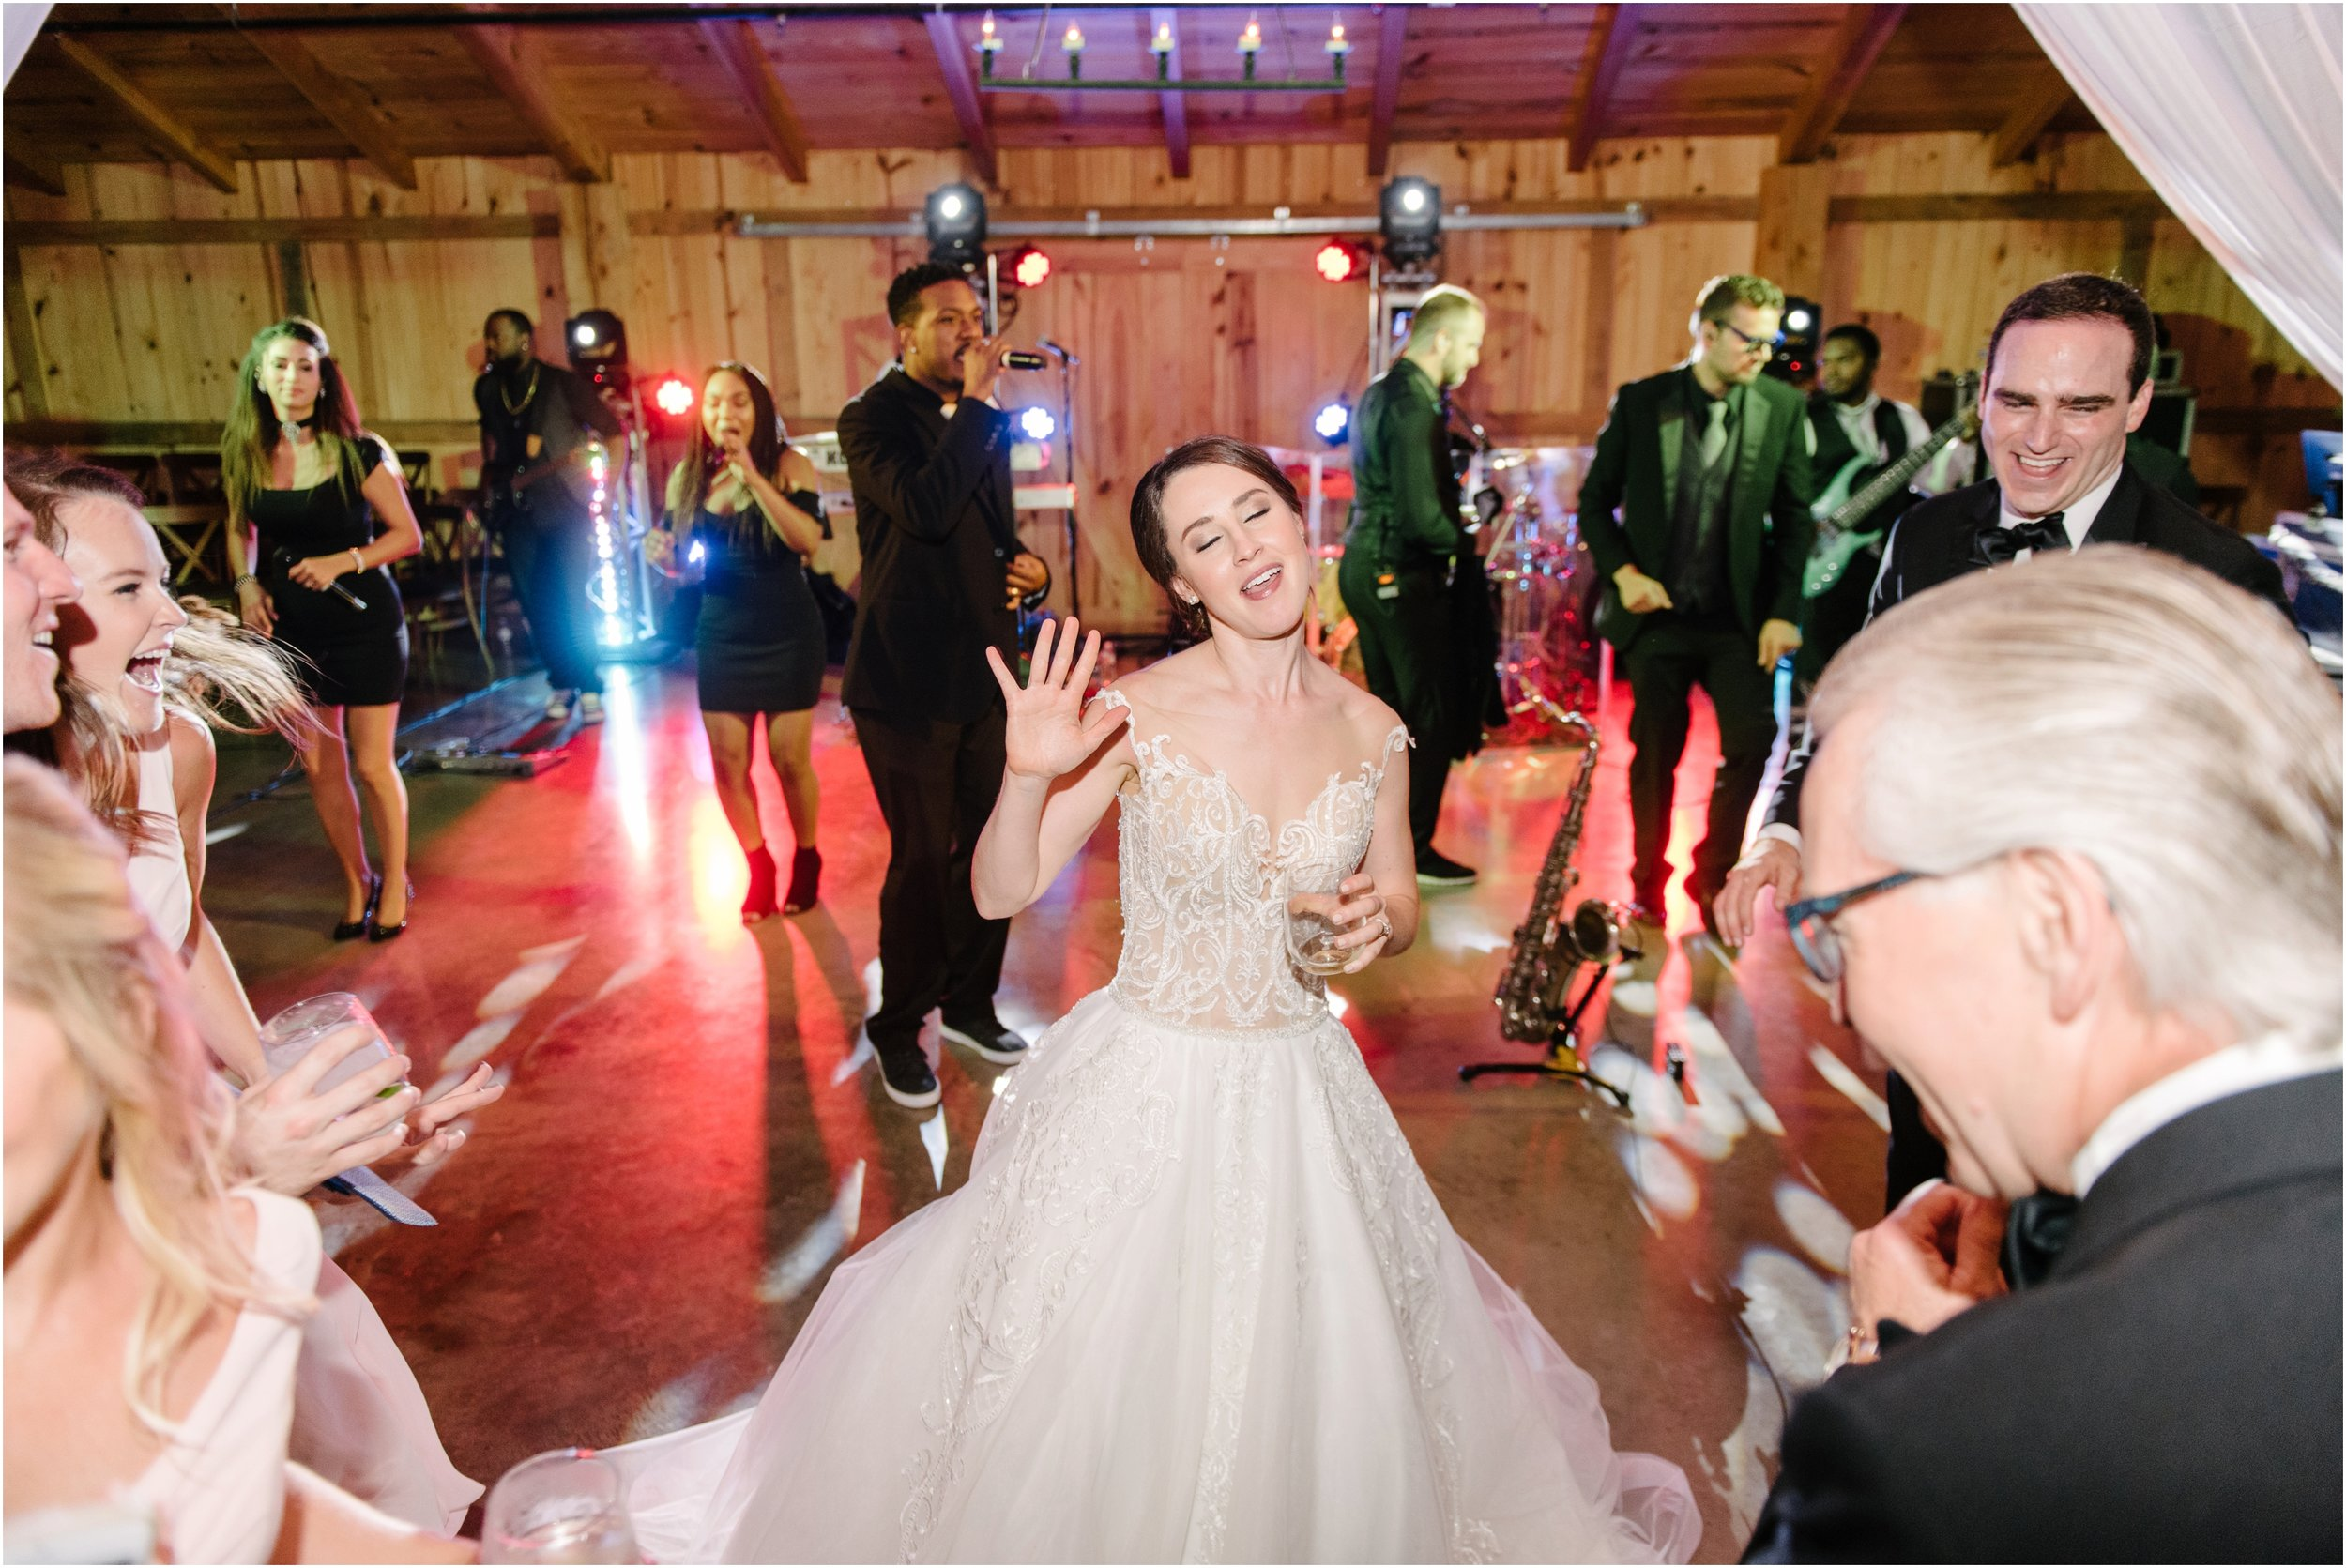 dallasweddingphotographer_fortworthweddingphotographer_texasweddingphotographer_mattandjulieweddings_whiterocklakewedding_KayleighClay_0046.jpg